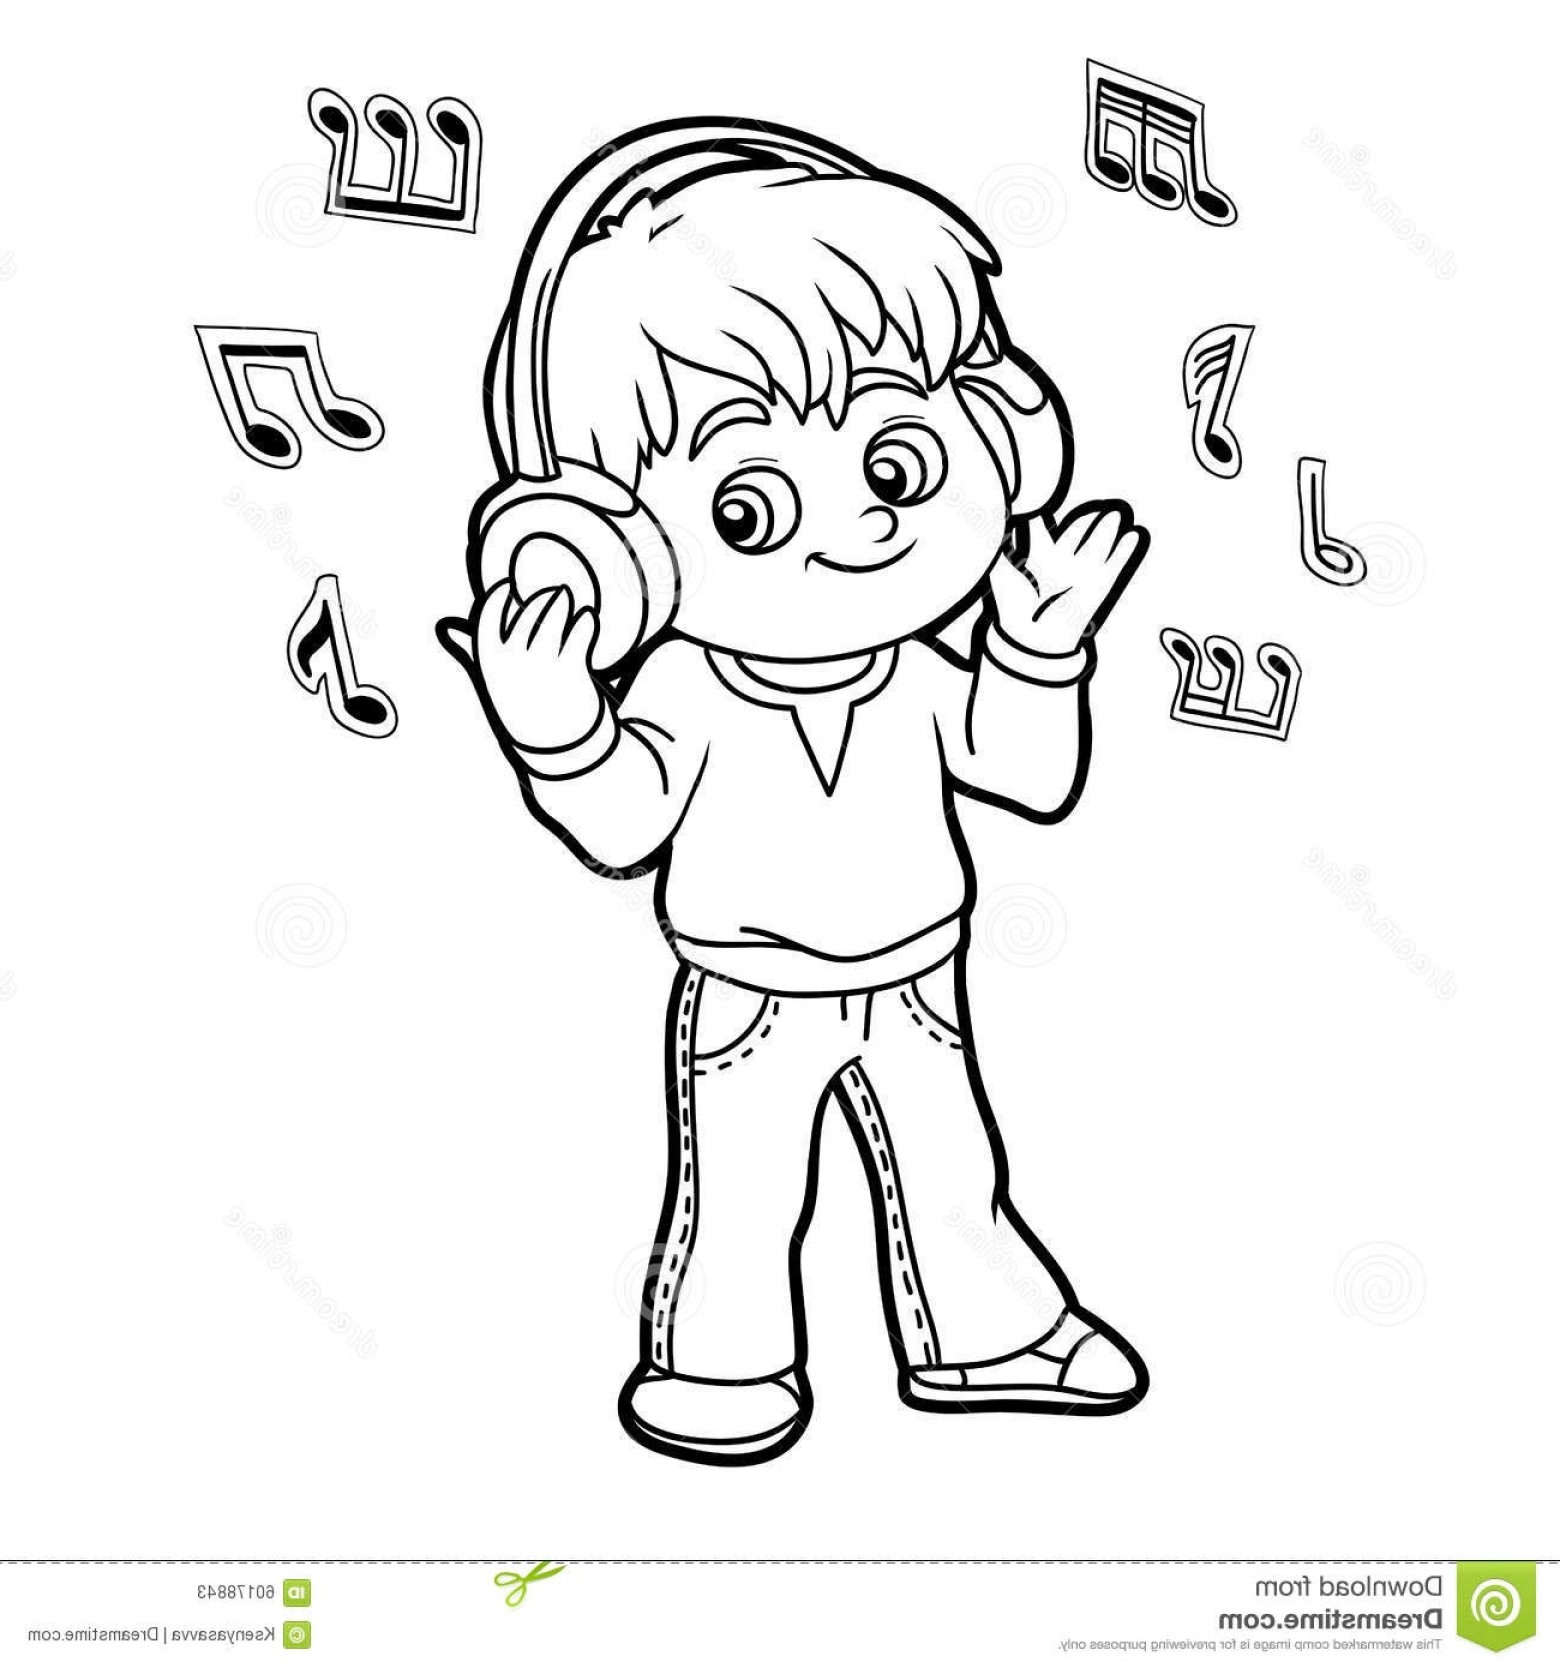 listening to music clipart black and white » clipart station